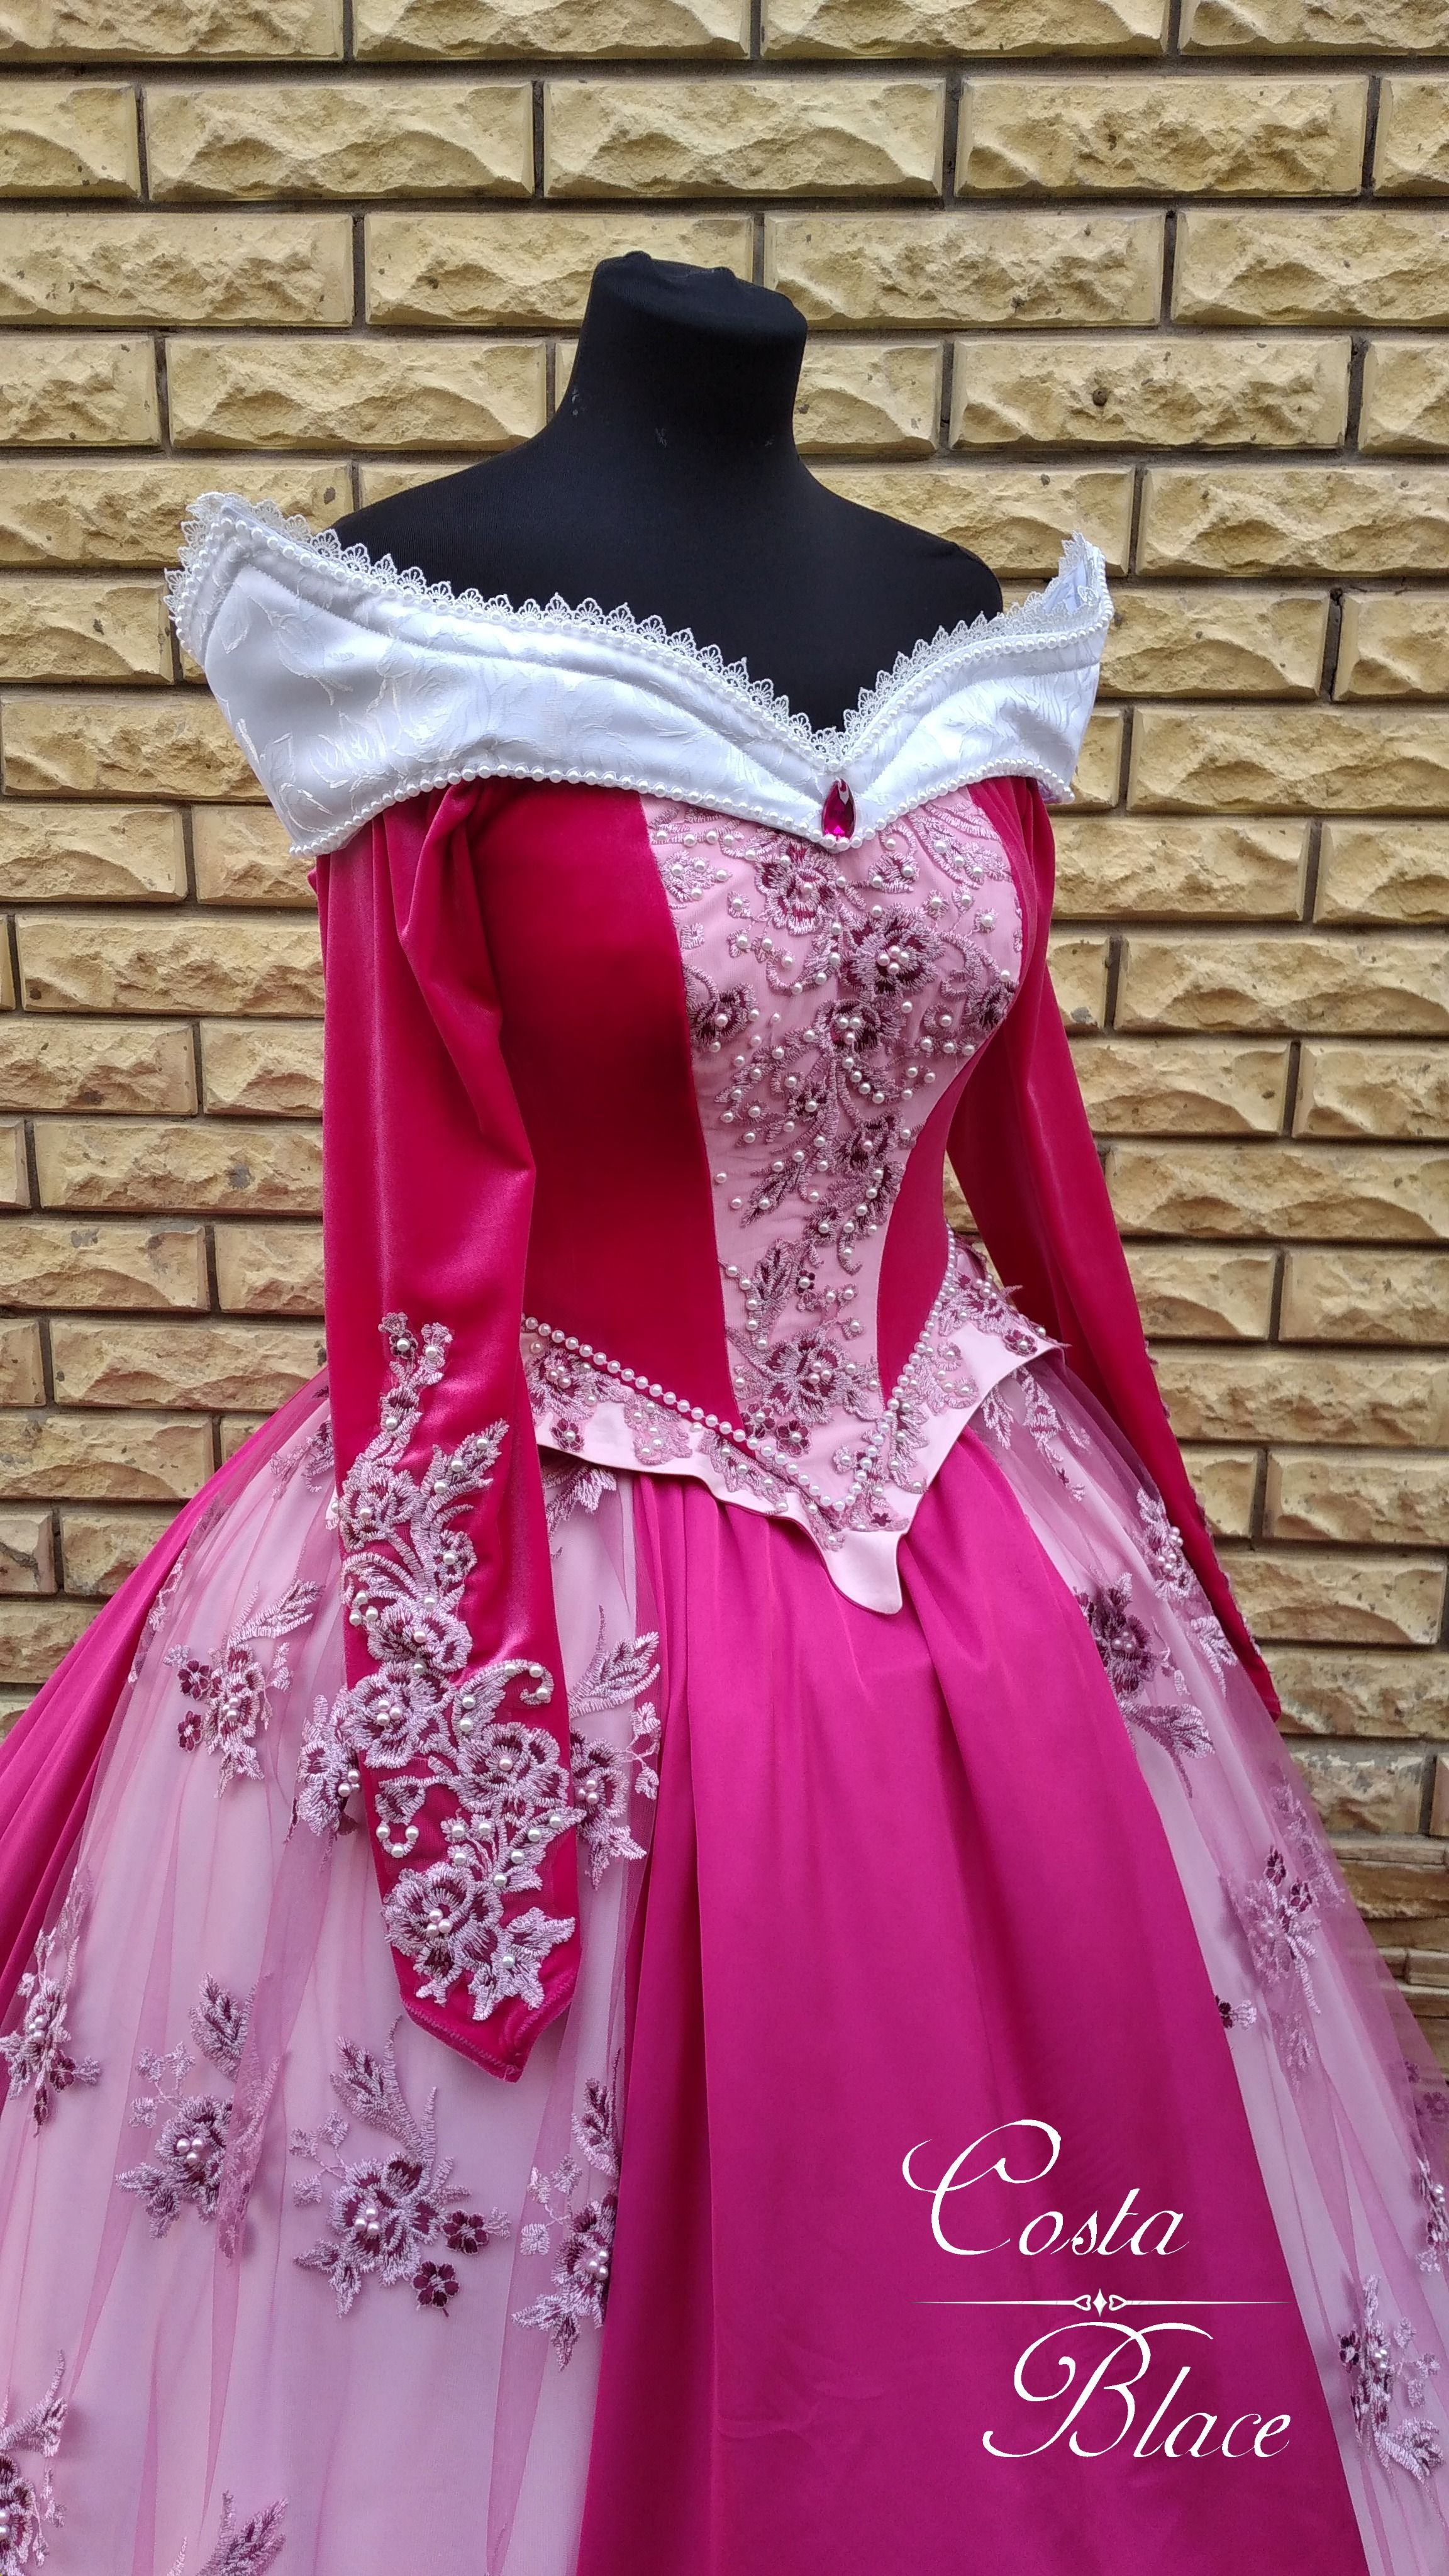 Princess Aurora dress decoration by Costa Blace sleeves embroidery diy halloween costume for adult w